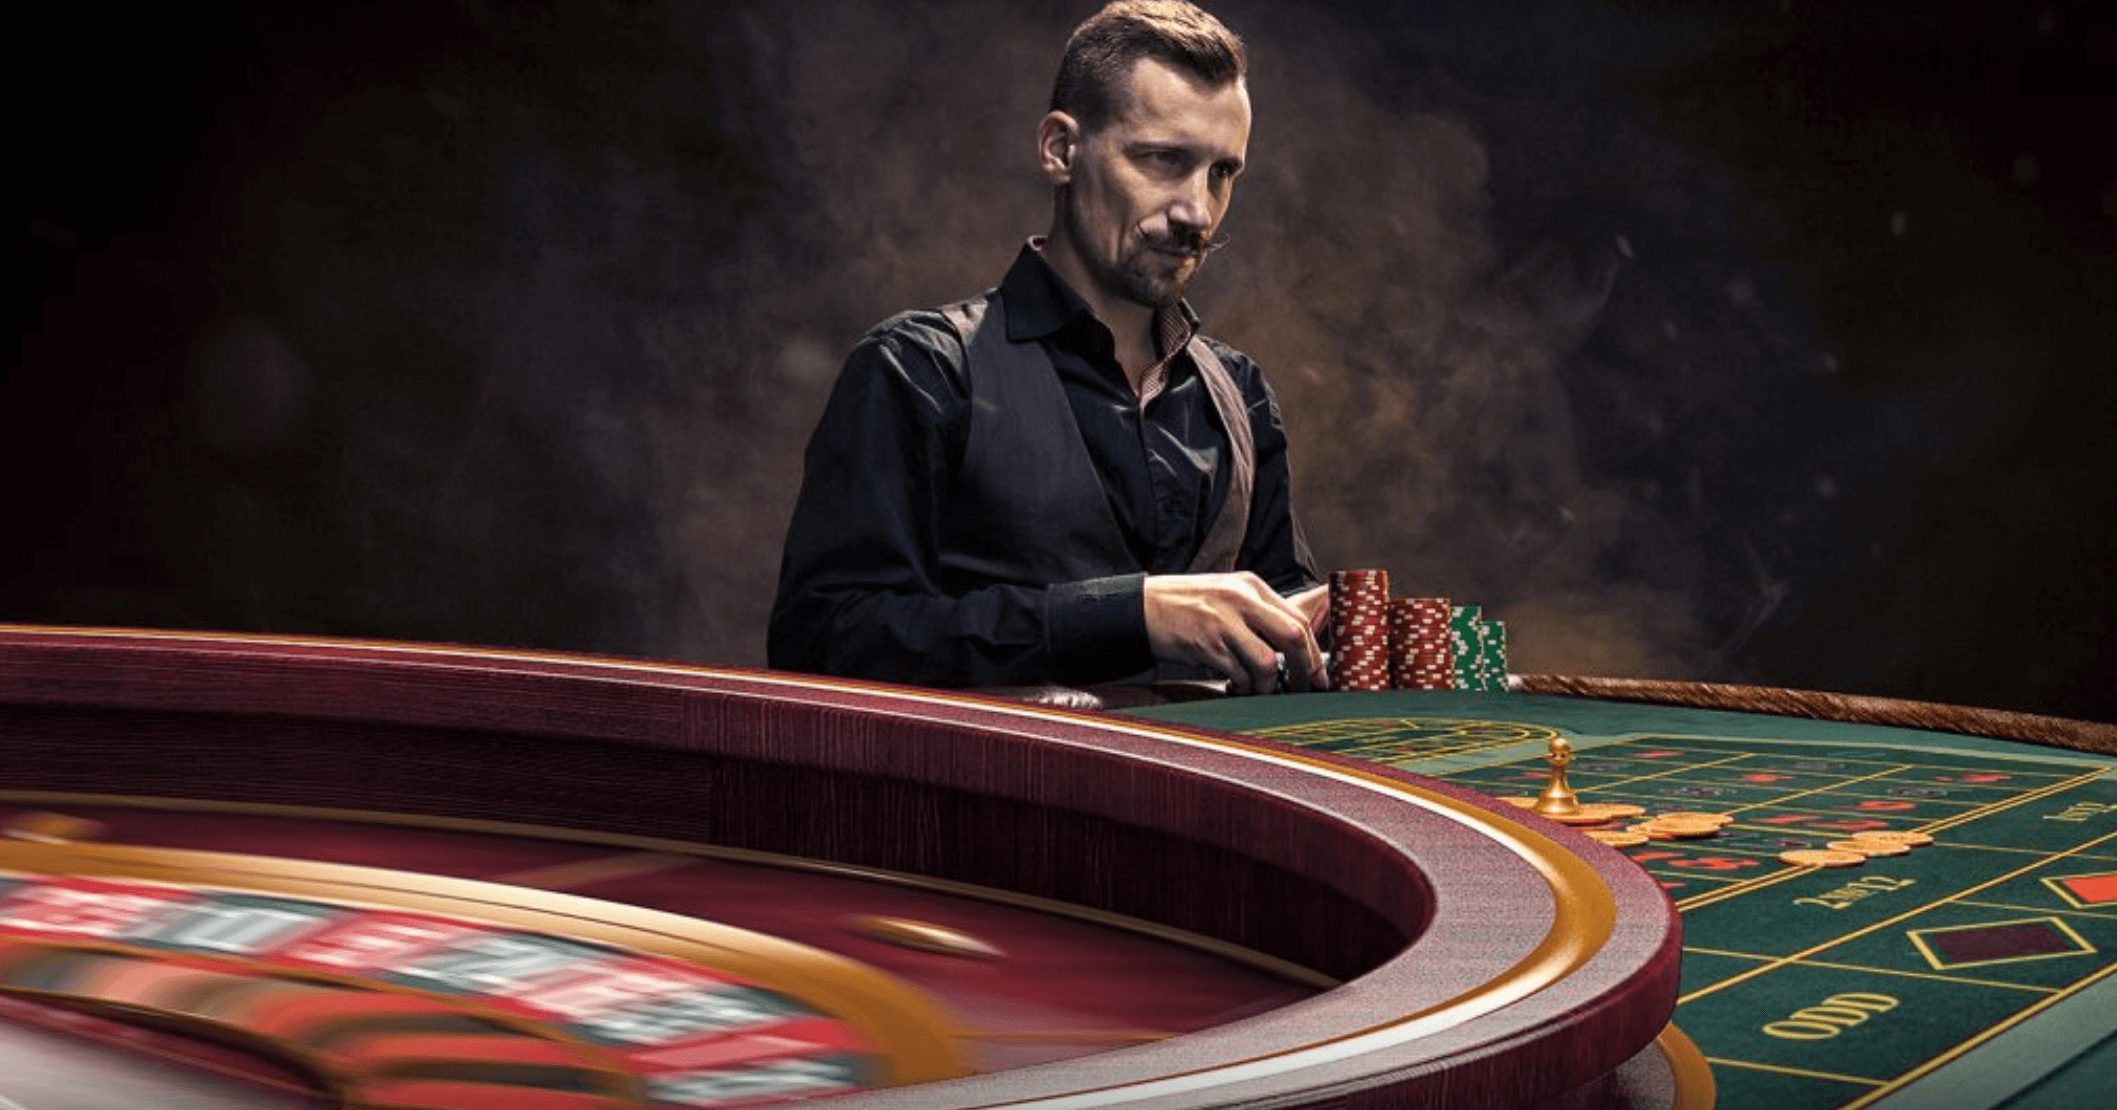 man at a roulette table placing bets